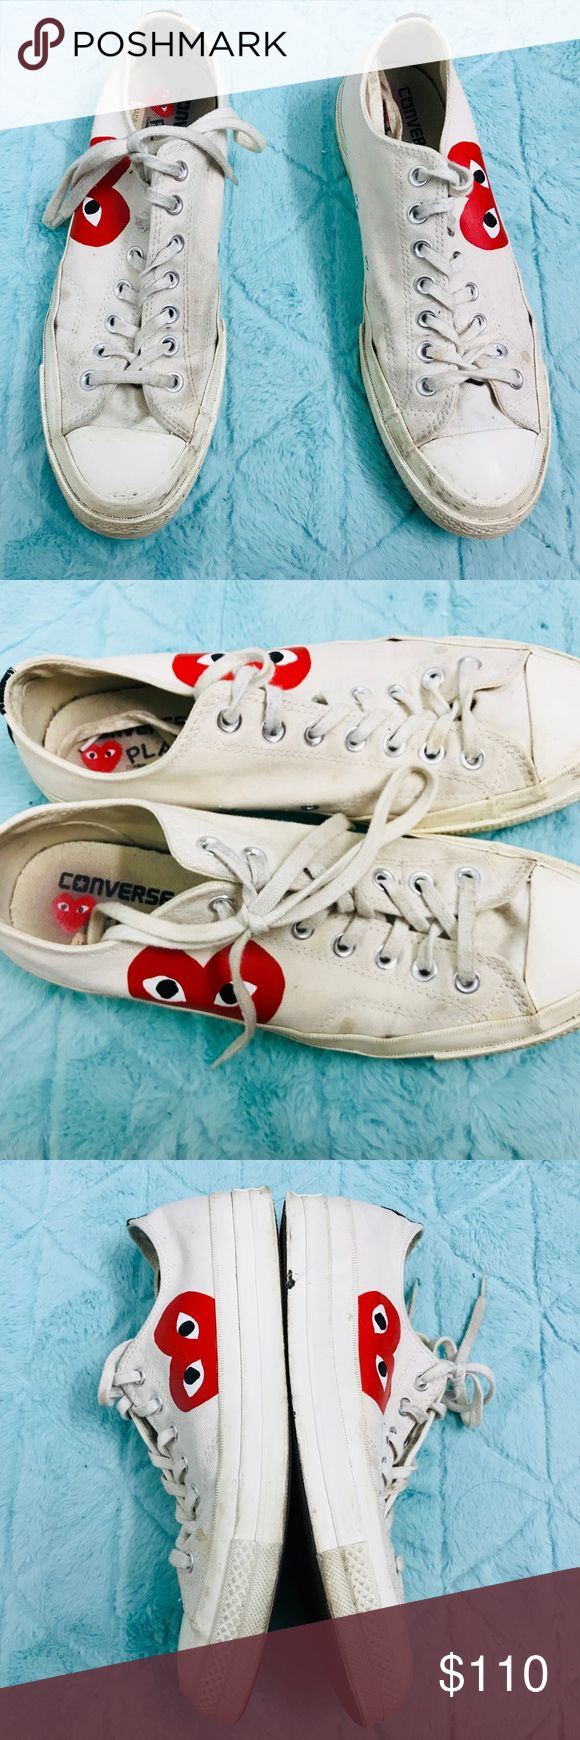 Converse Comme des Garcons white low top 9M/ 11W Shoes and laces are dirty and show signs of wear as shown in photos. Perfect for the worn look!  Come with original box.  Price is FIRM here due to Poshmark fees.  $95 shipped (comments only)  Tags: #cdg #comme #commedesgarcons #cdgplay #converseplay #lowtops Comme des Garcons Shoes Sneakers